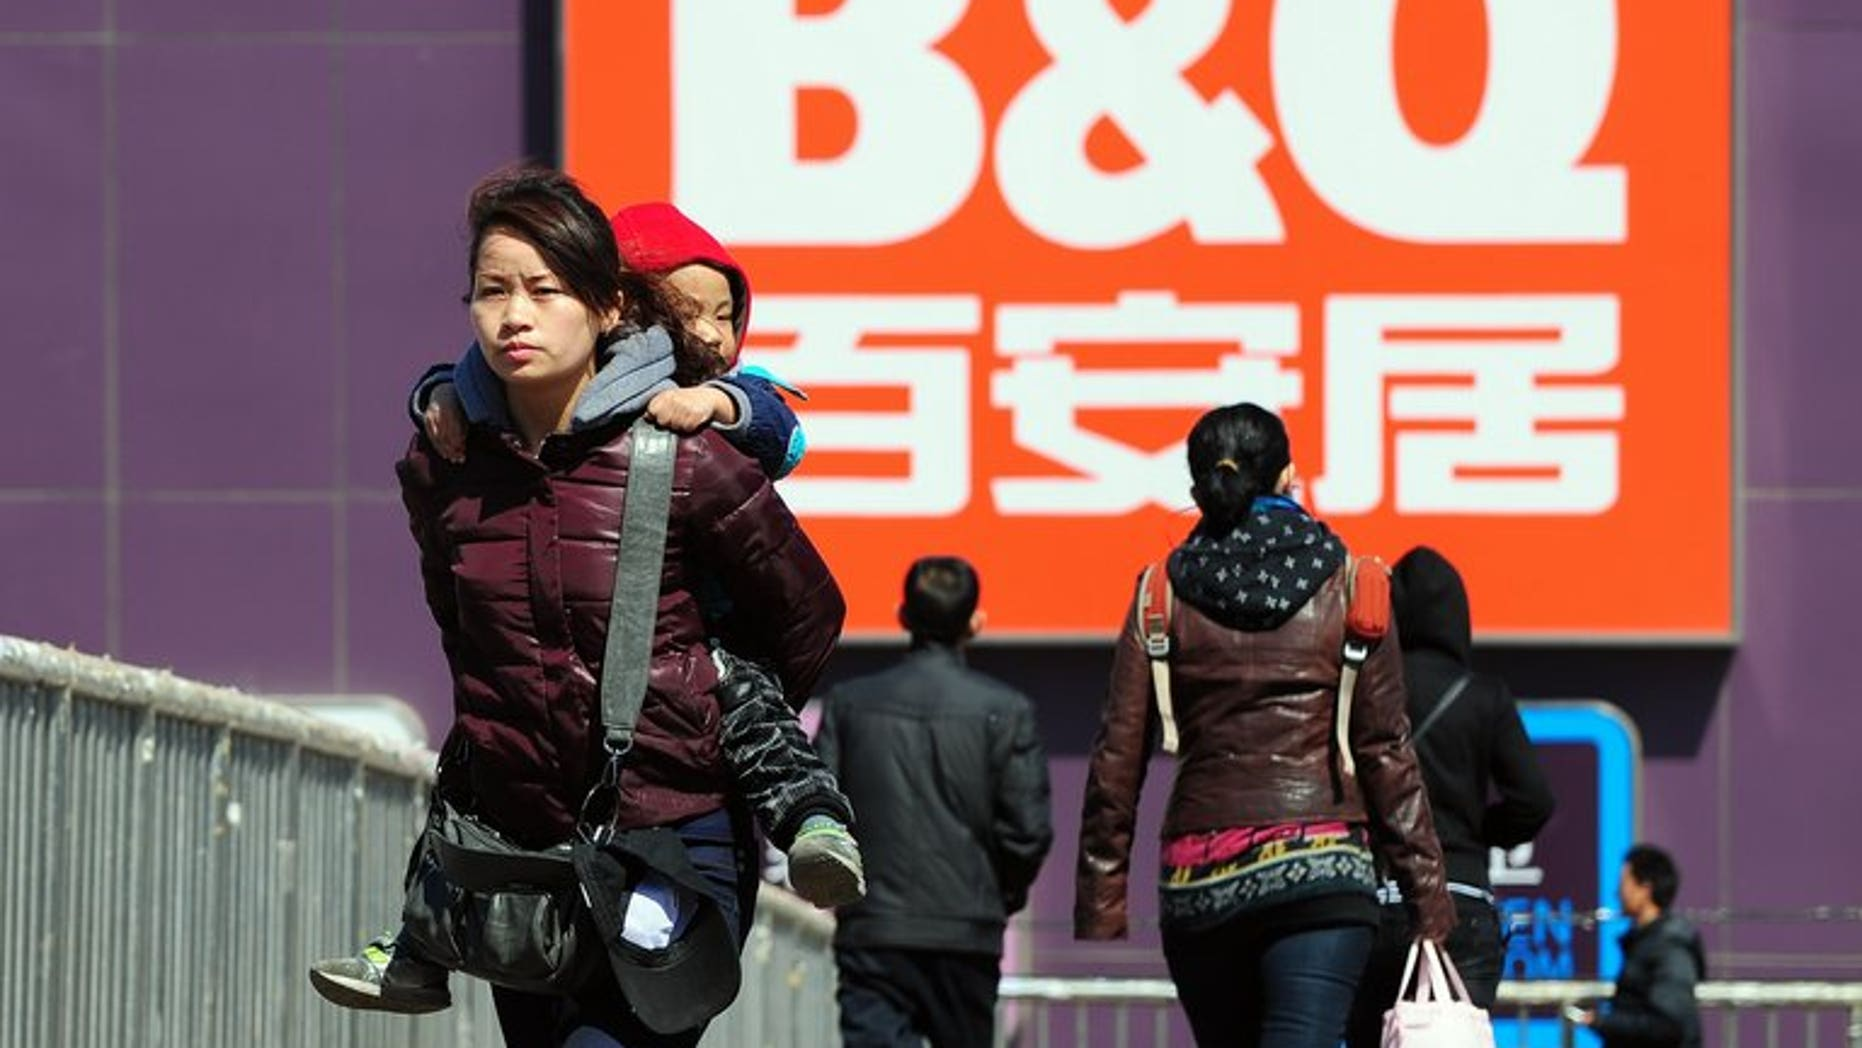 A woman carries a child on her back as pedestrians cross a footbridge overpass in front of a B&Q DIY shop in Beijing on March 24, 2011. Kingfisher, Europe's biggest home-improvements retailer, said that group net profit surged by 70 percent during the first half of its financial year mainly thanks to an exceptional tax gain.